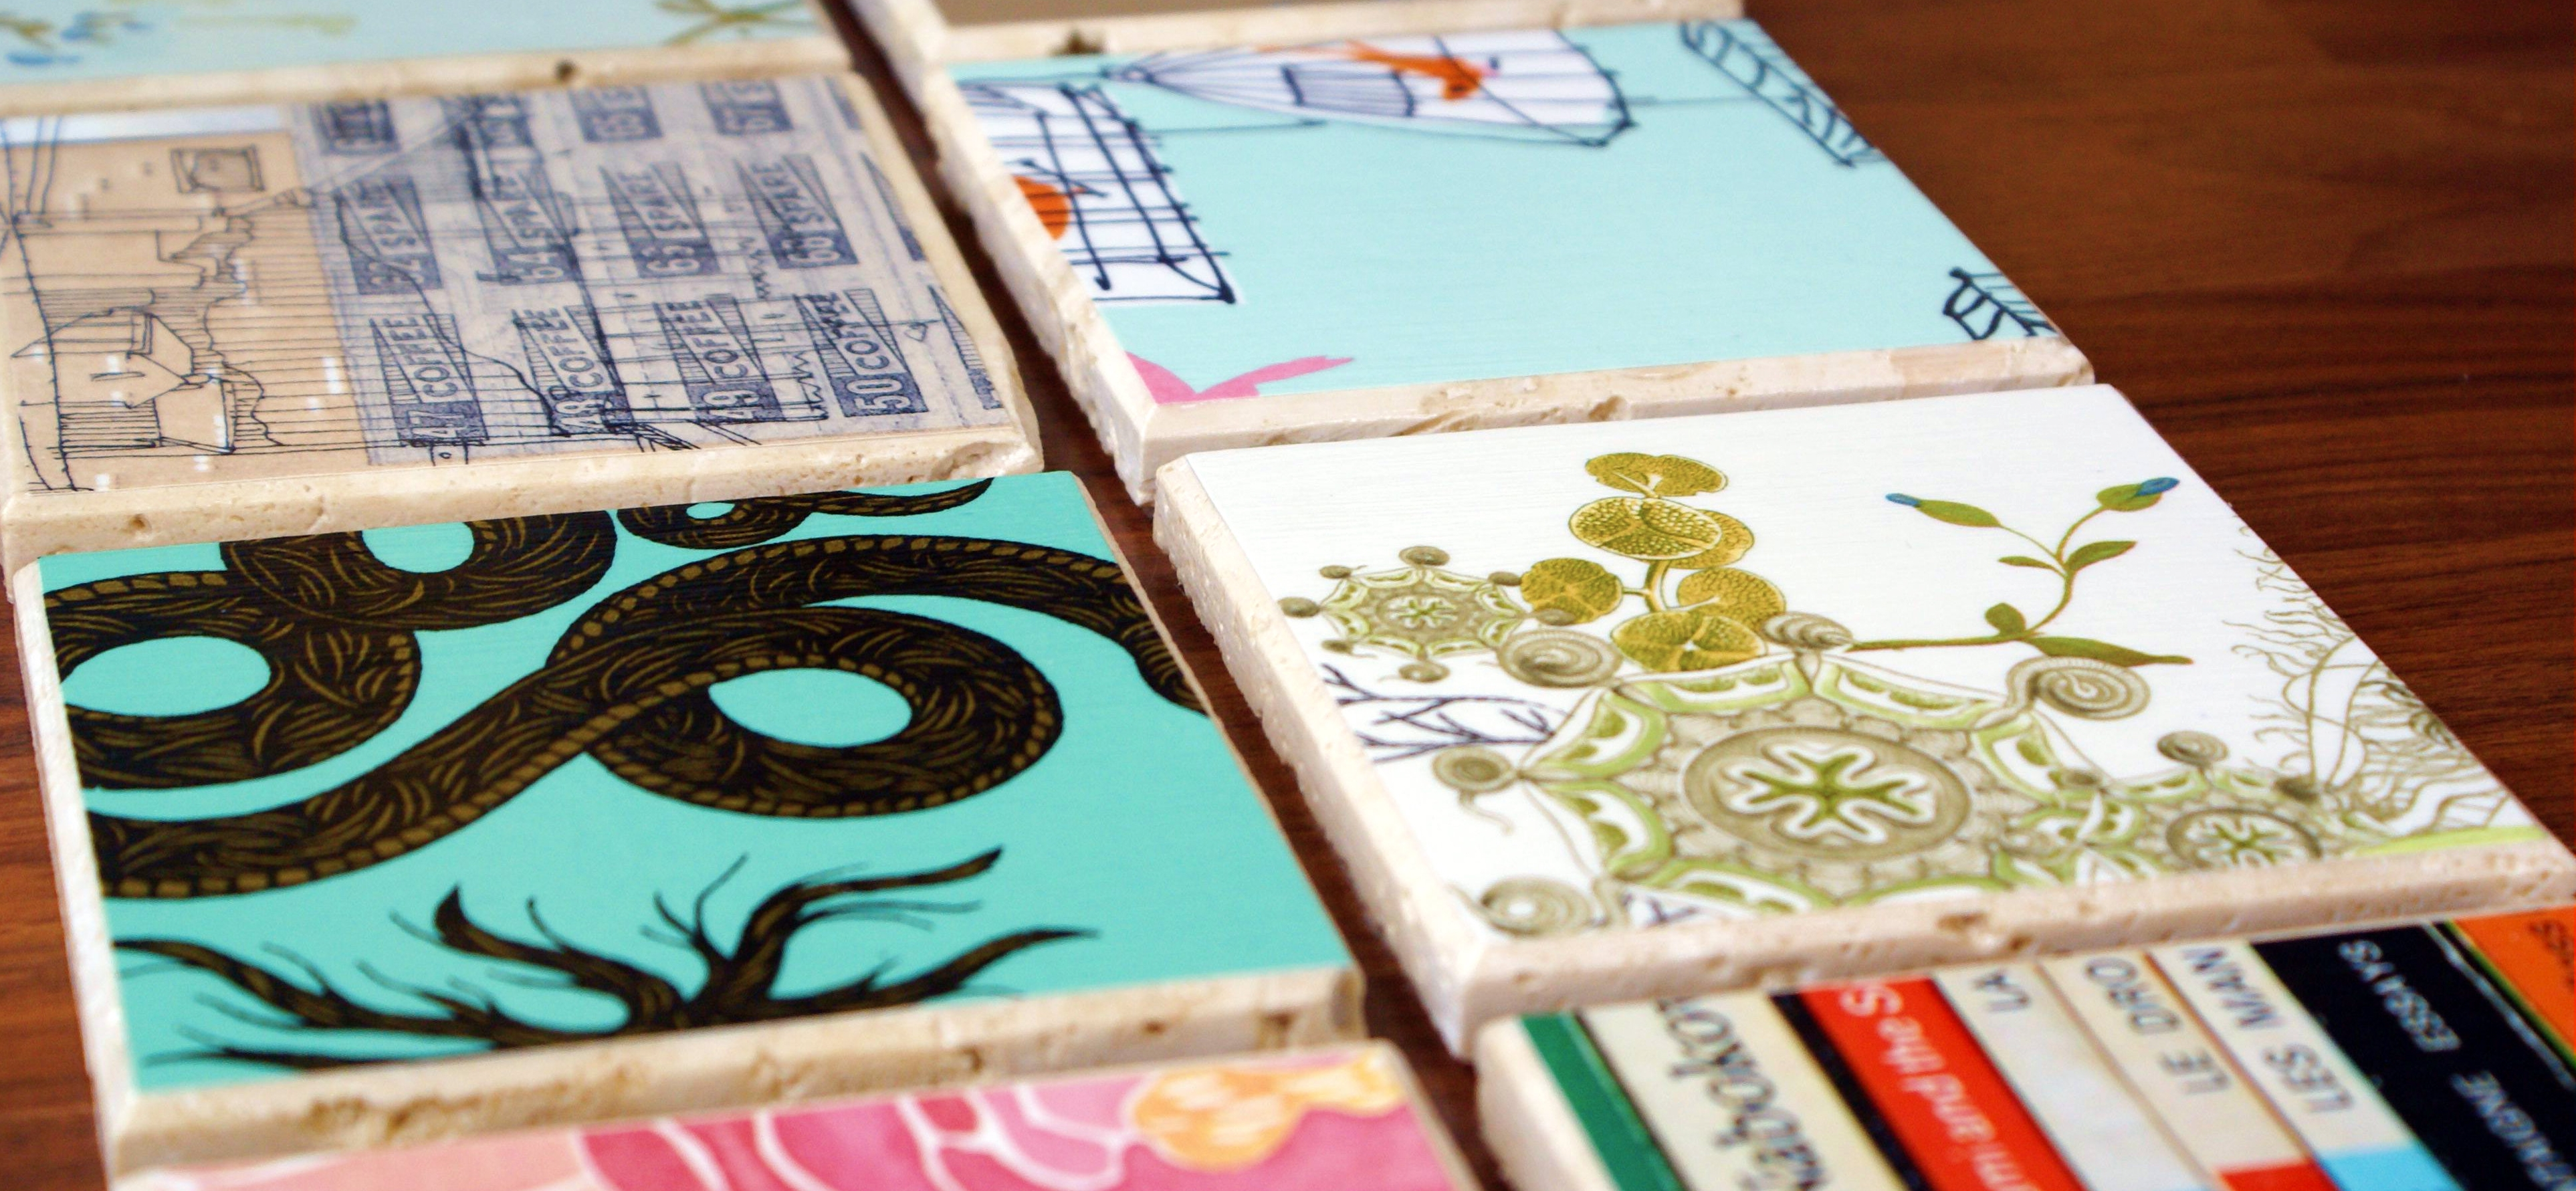 30 Diy Ideas For Customizing Coasters Reliable Remodeler